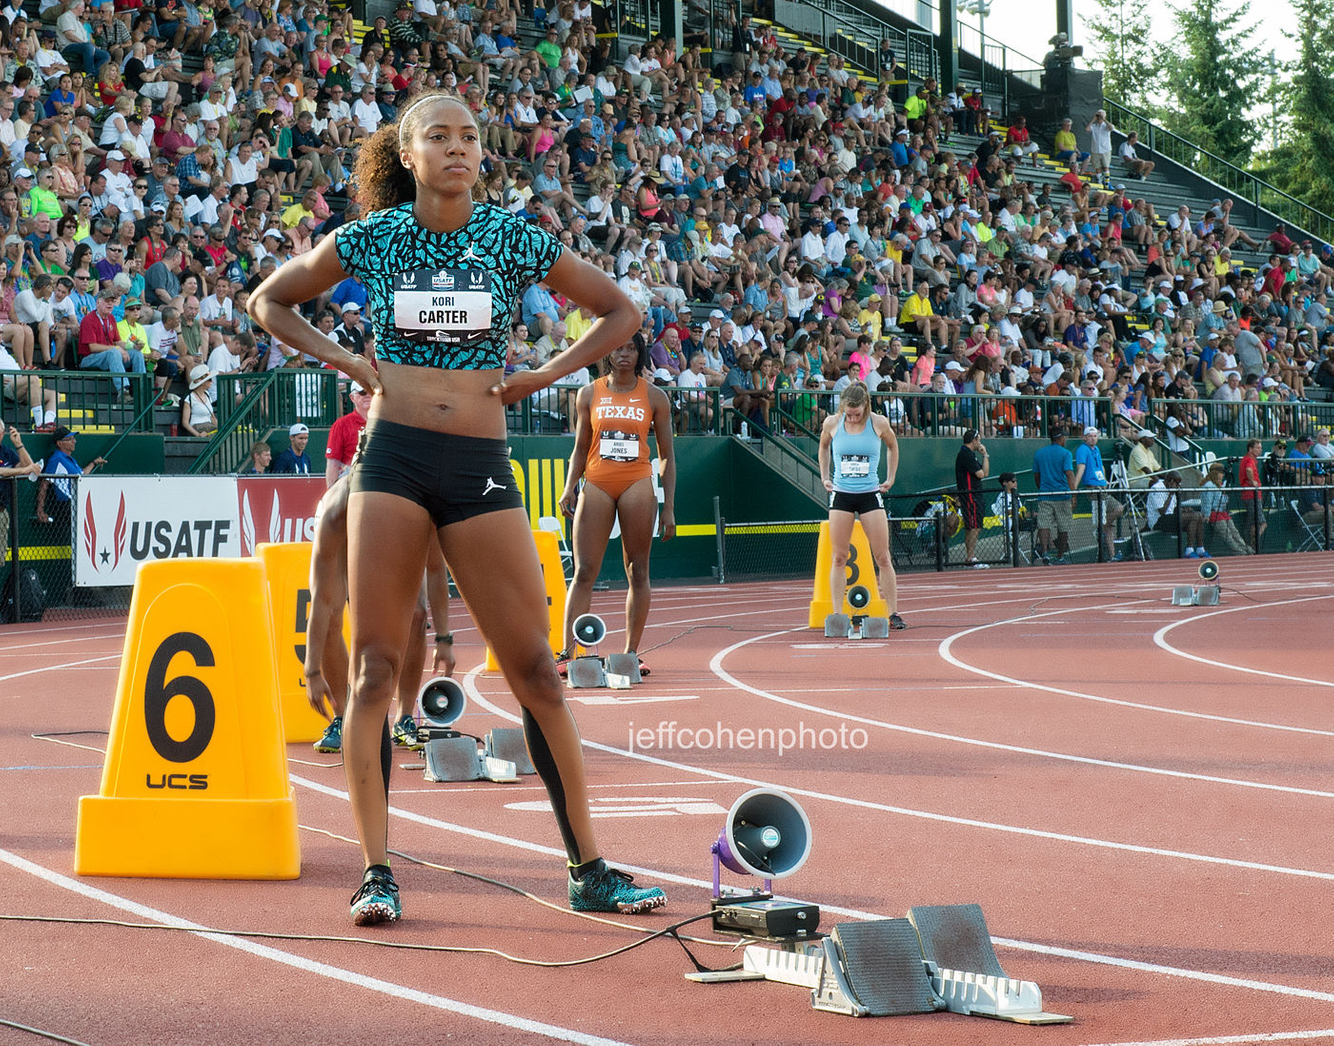 1r2015_usaoutdoors__kori_carter_400h_jeff_cohen1704_web.jpg